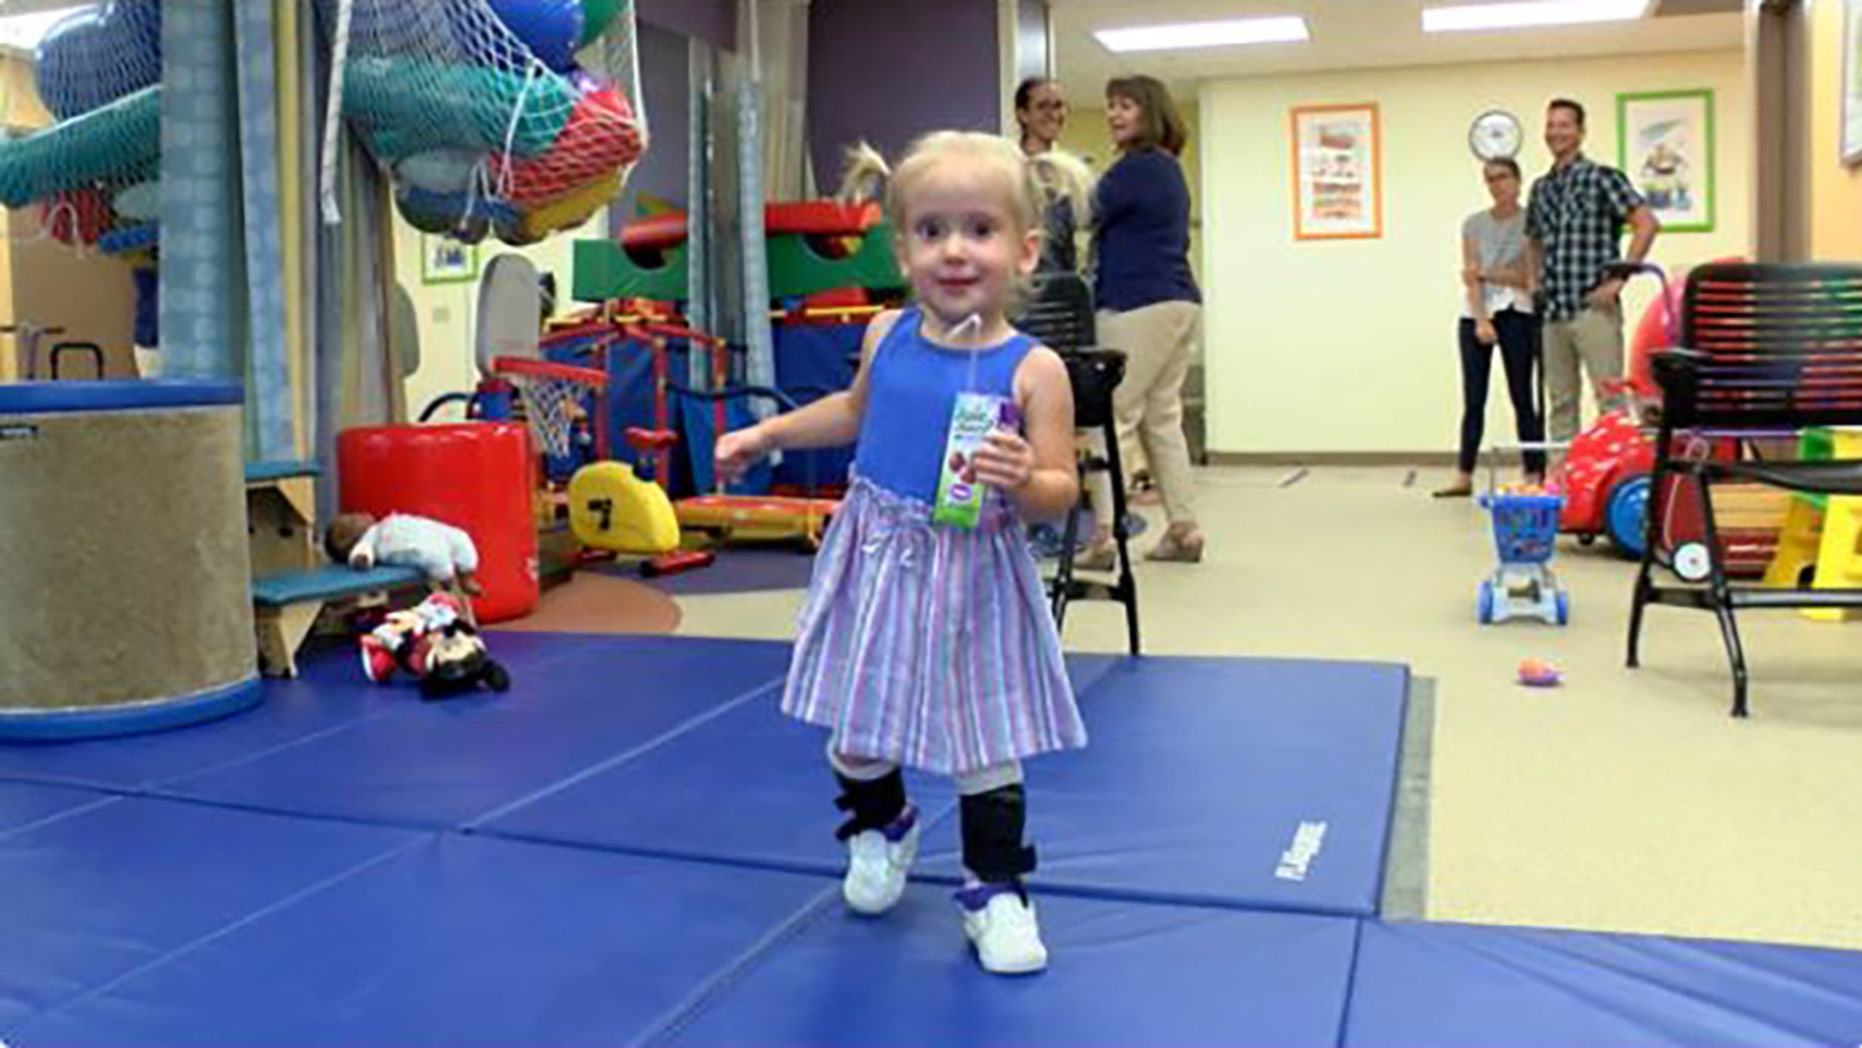 Westlake Legal Group toddler-with-spina-bifida Florida toddler with spina bifida uses 'Baby Shark' tune to learn how to walk fox-news/us/us-regions/southeast/florida fox-news/lifestyle/parenting fox-news/health/medical-research/rare-diseases fox-news/entertainment/genres/kids fox news fnc/us fnc Danielle Wallace article 2c3a5997-6e02-5856-92bf-0636514ad5dd